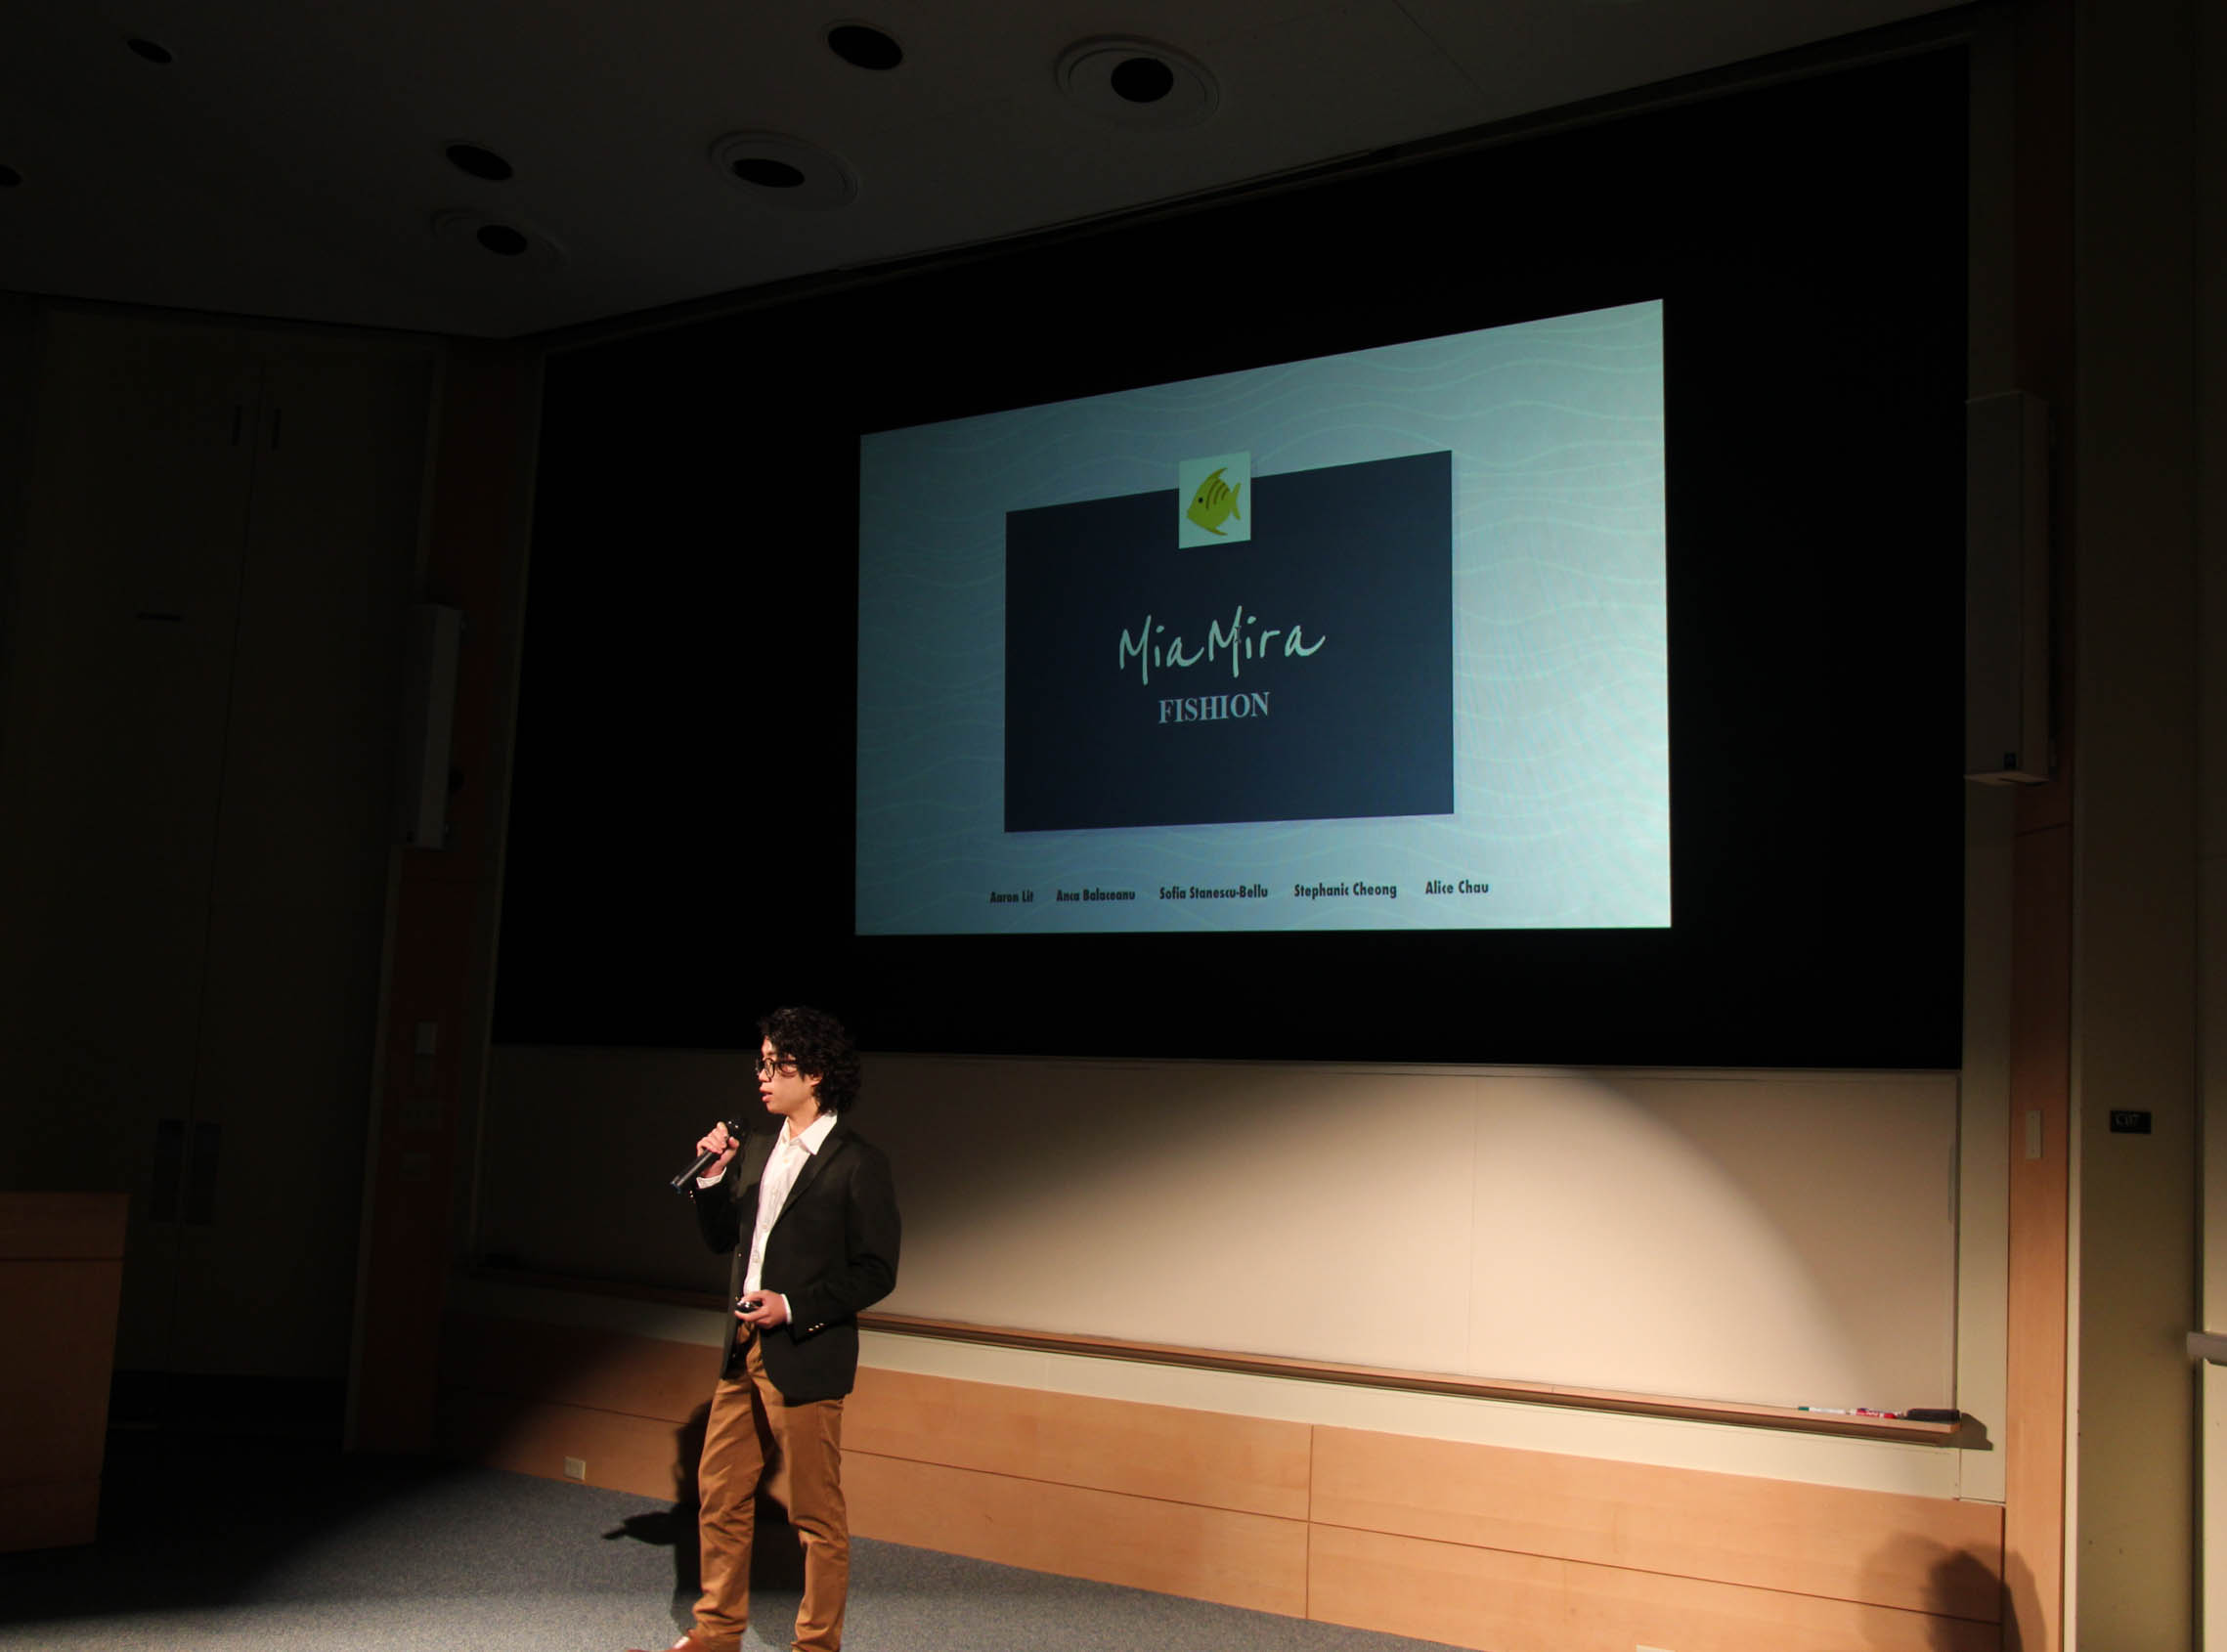 Compete in The Pitch - The Pitch event is an opportunity for members of the Dartmouth Community to pitch a project idea and ask for support through design, development, and/or funding. Winning DALI projects jump the application process and start the subsequent term.